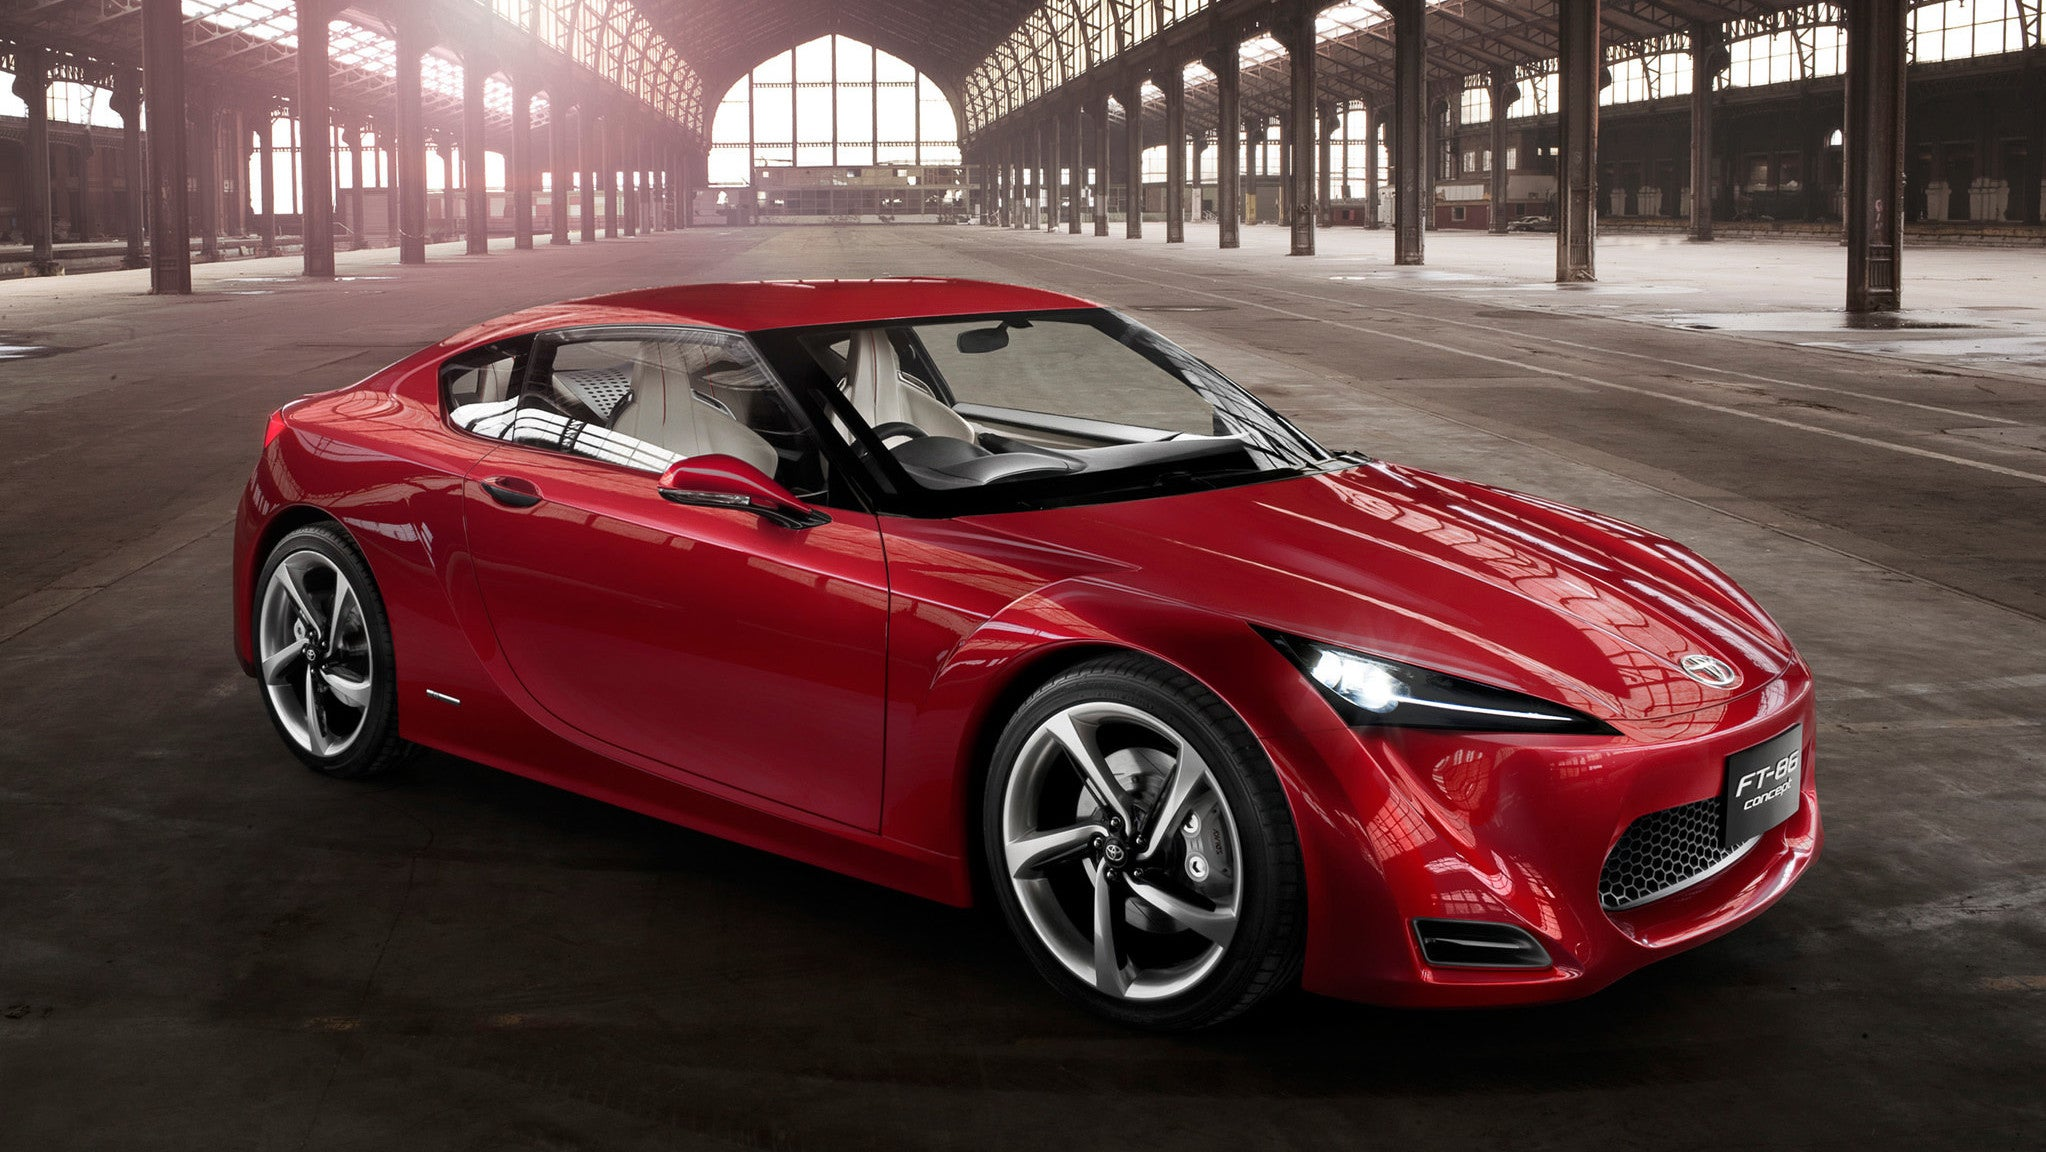 Details Of Six New Toyota Models Including Next-Gen 86 Sports Car May Have Just Leaked